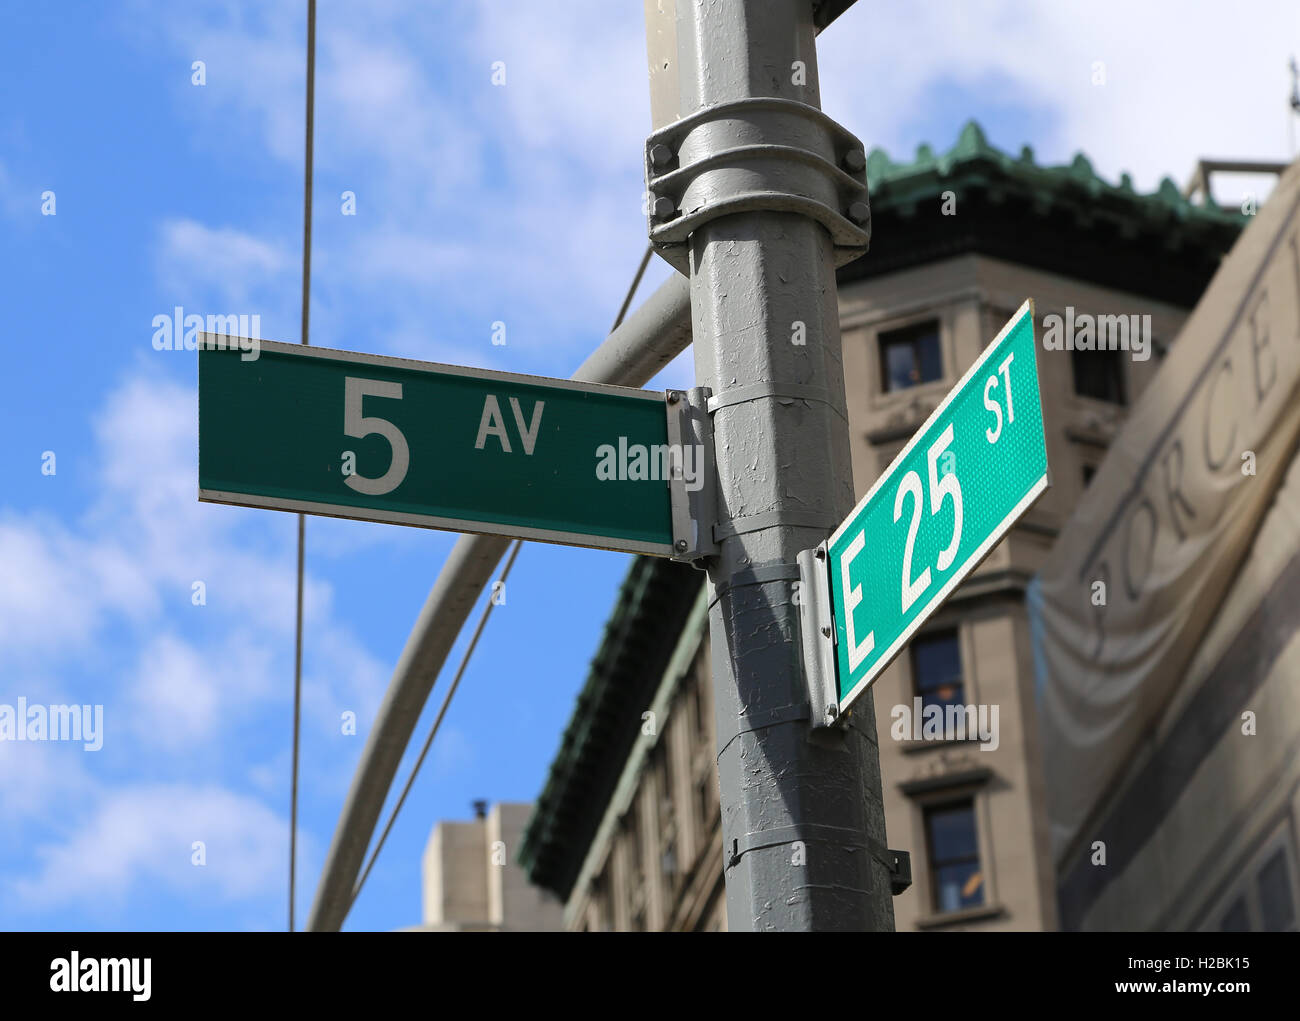 Indicate 5th Avenue. New York, United States. - Stock Image